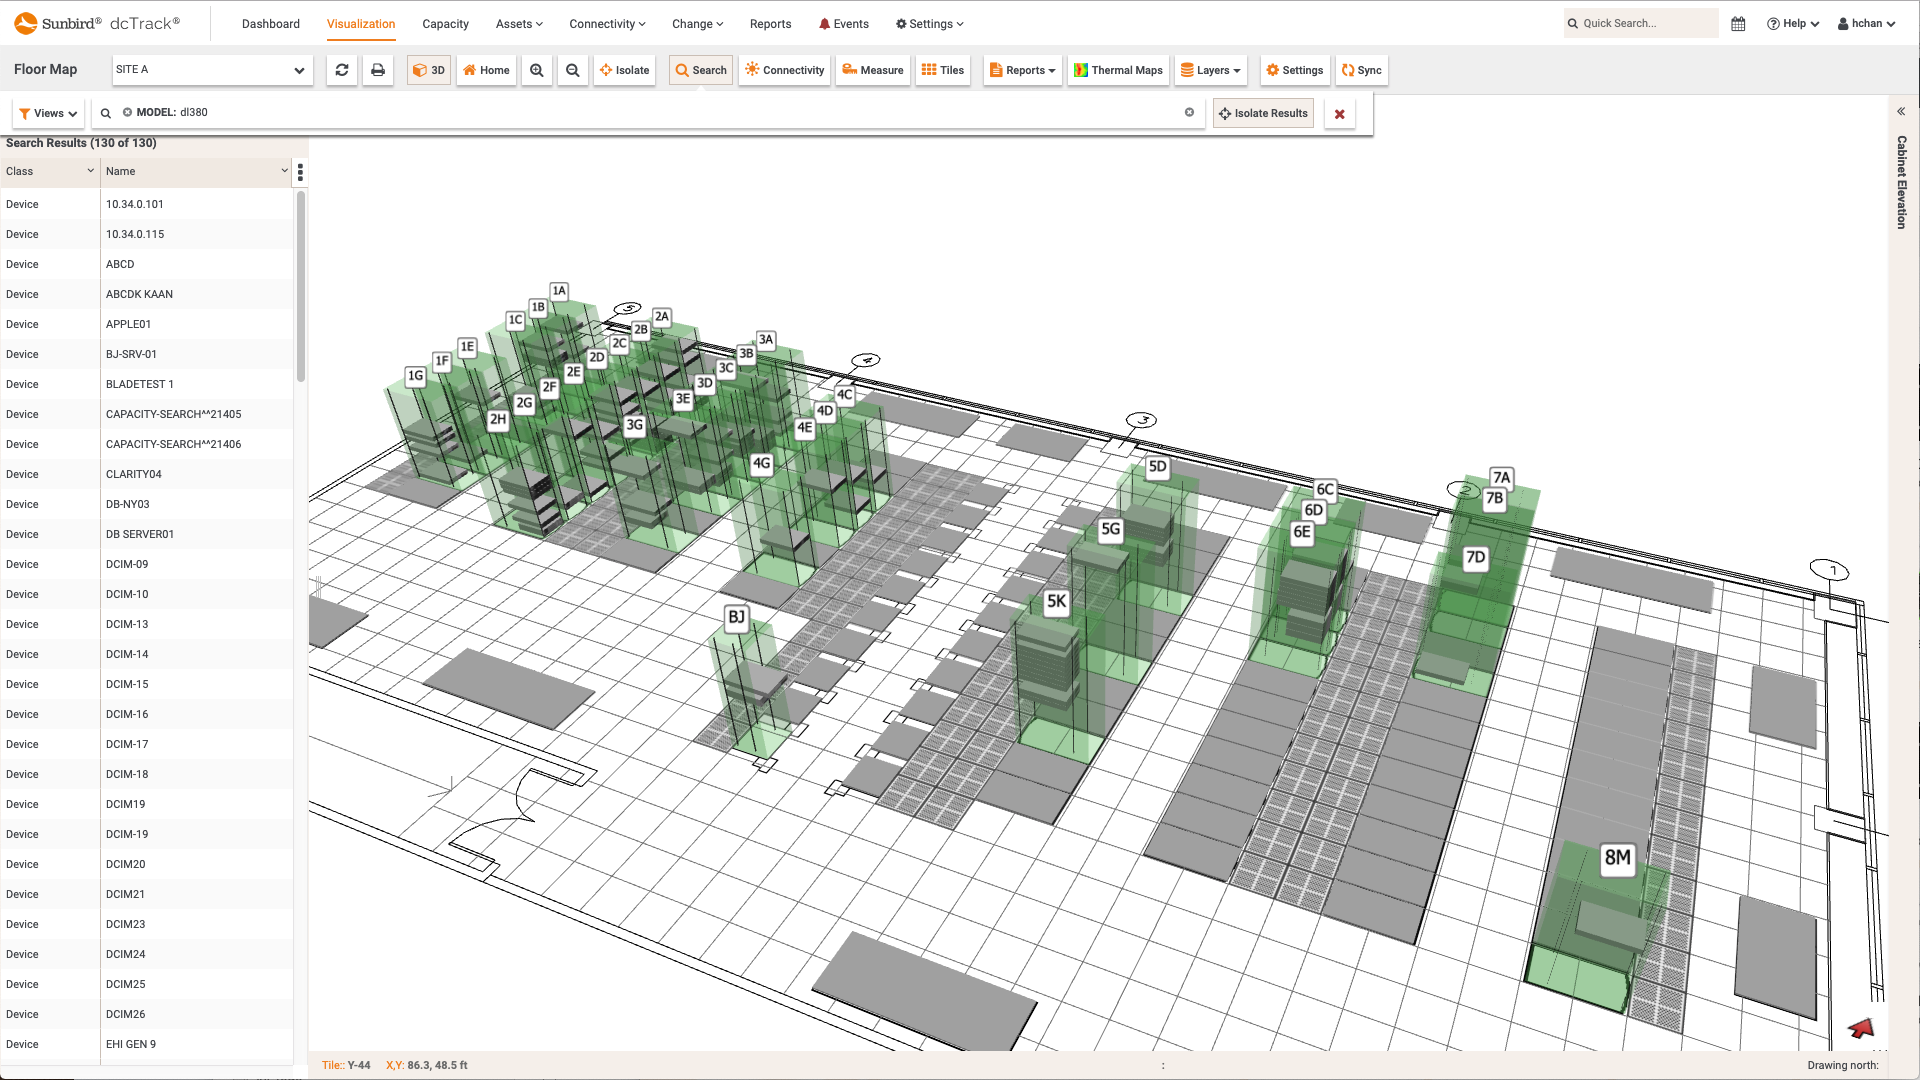 Screenshot of Filtered 3D Search of All Server Models